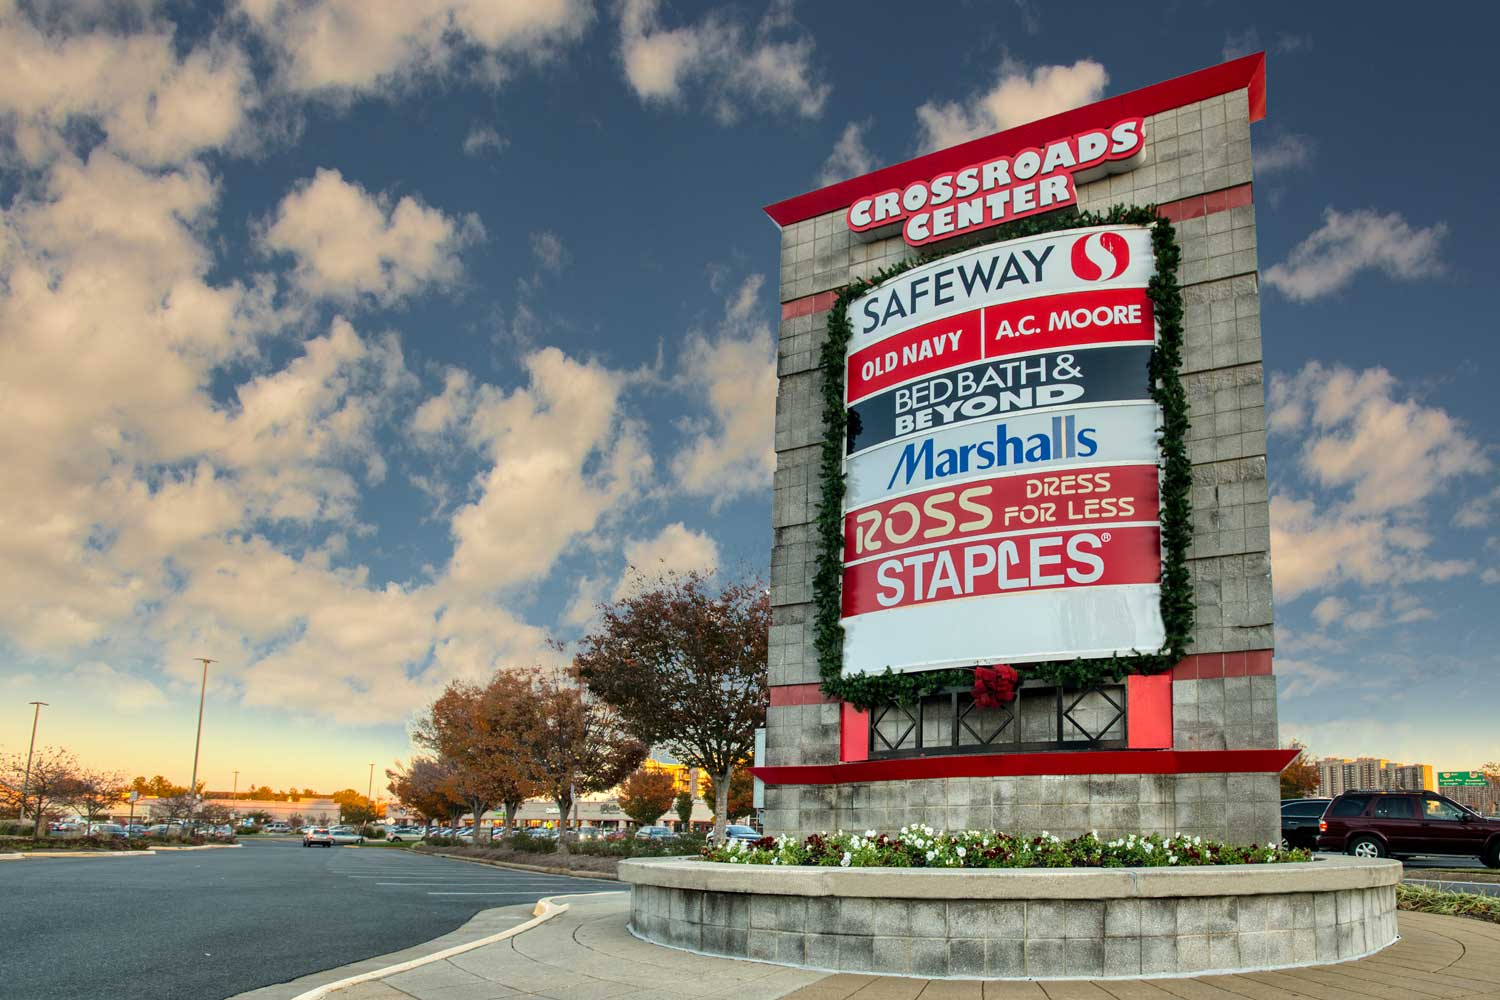 Crossroads Center shopping center is 2 minutes from Barcroft View Apartments